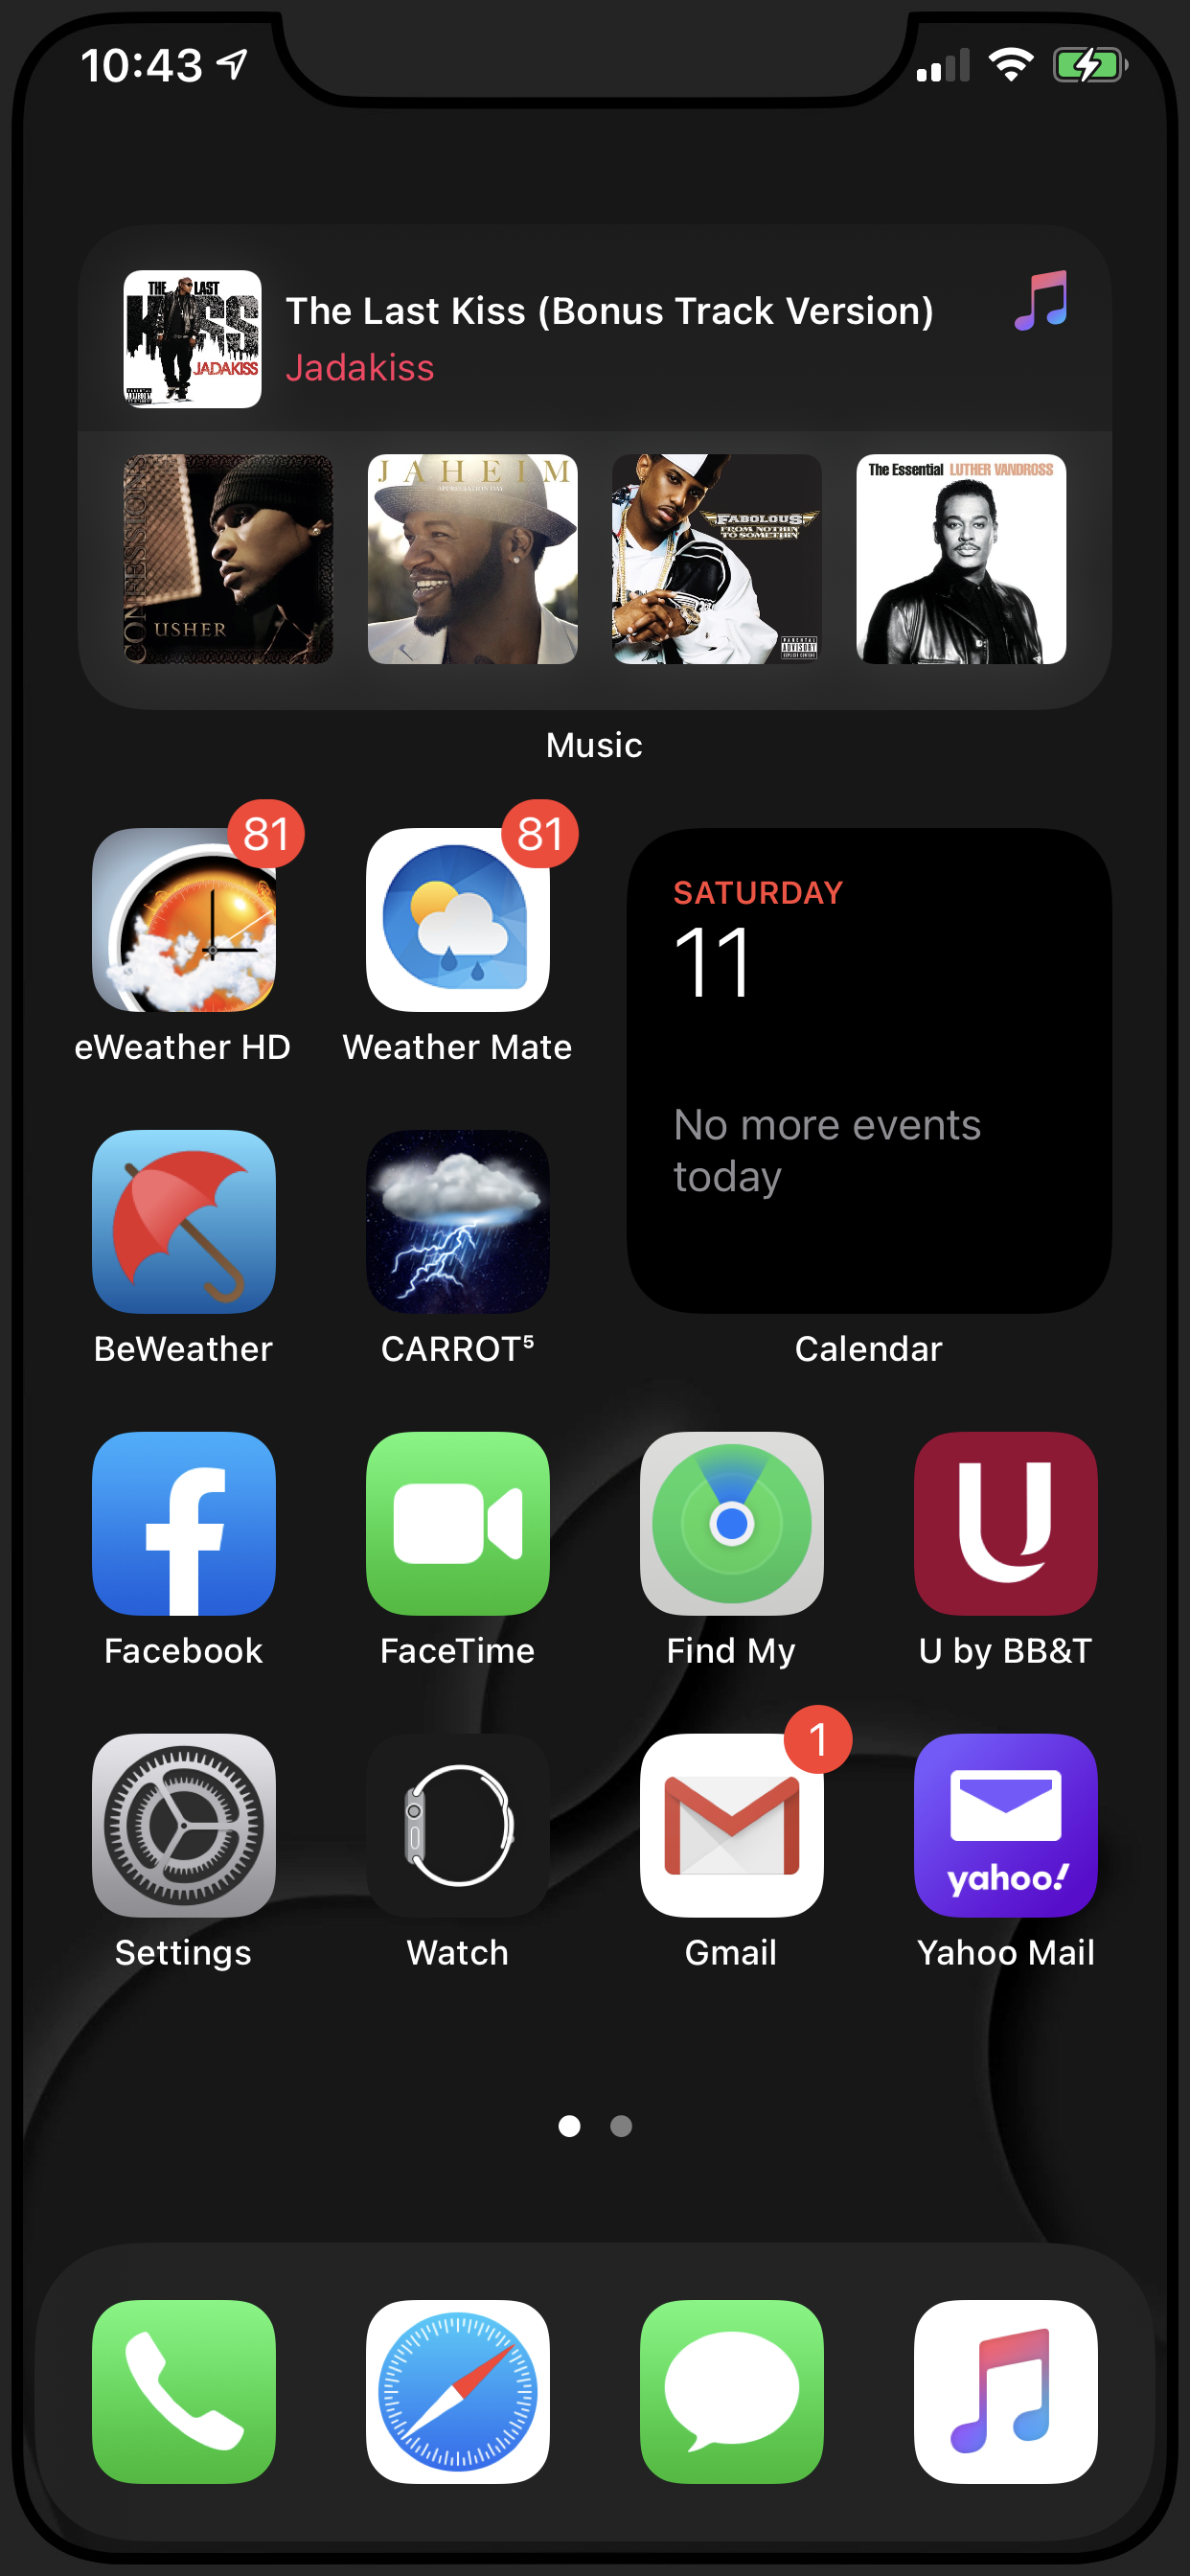 Let's see your iPhone lock/home screens!